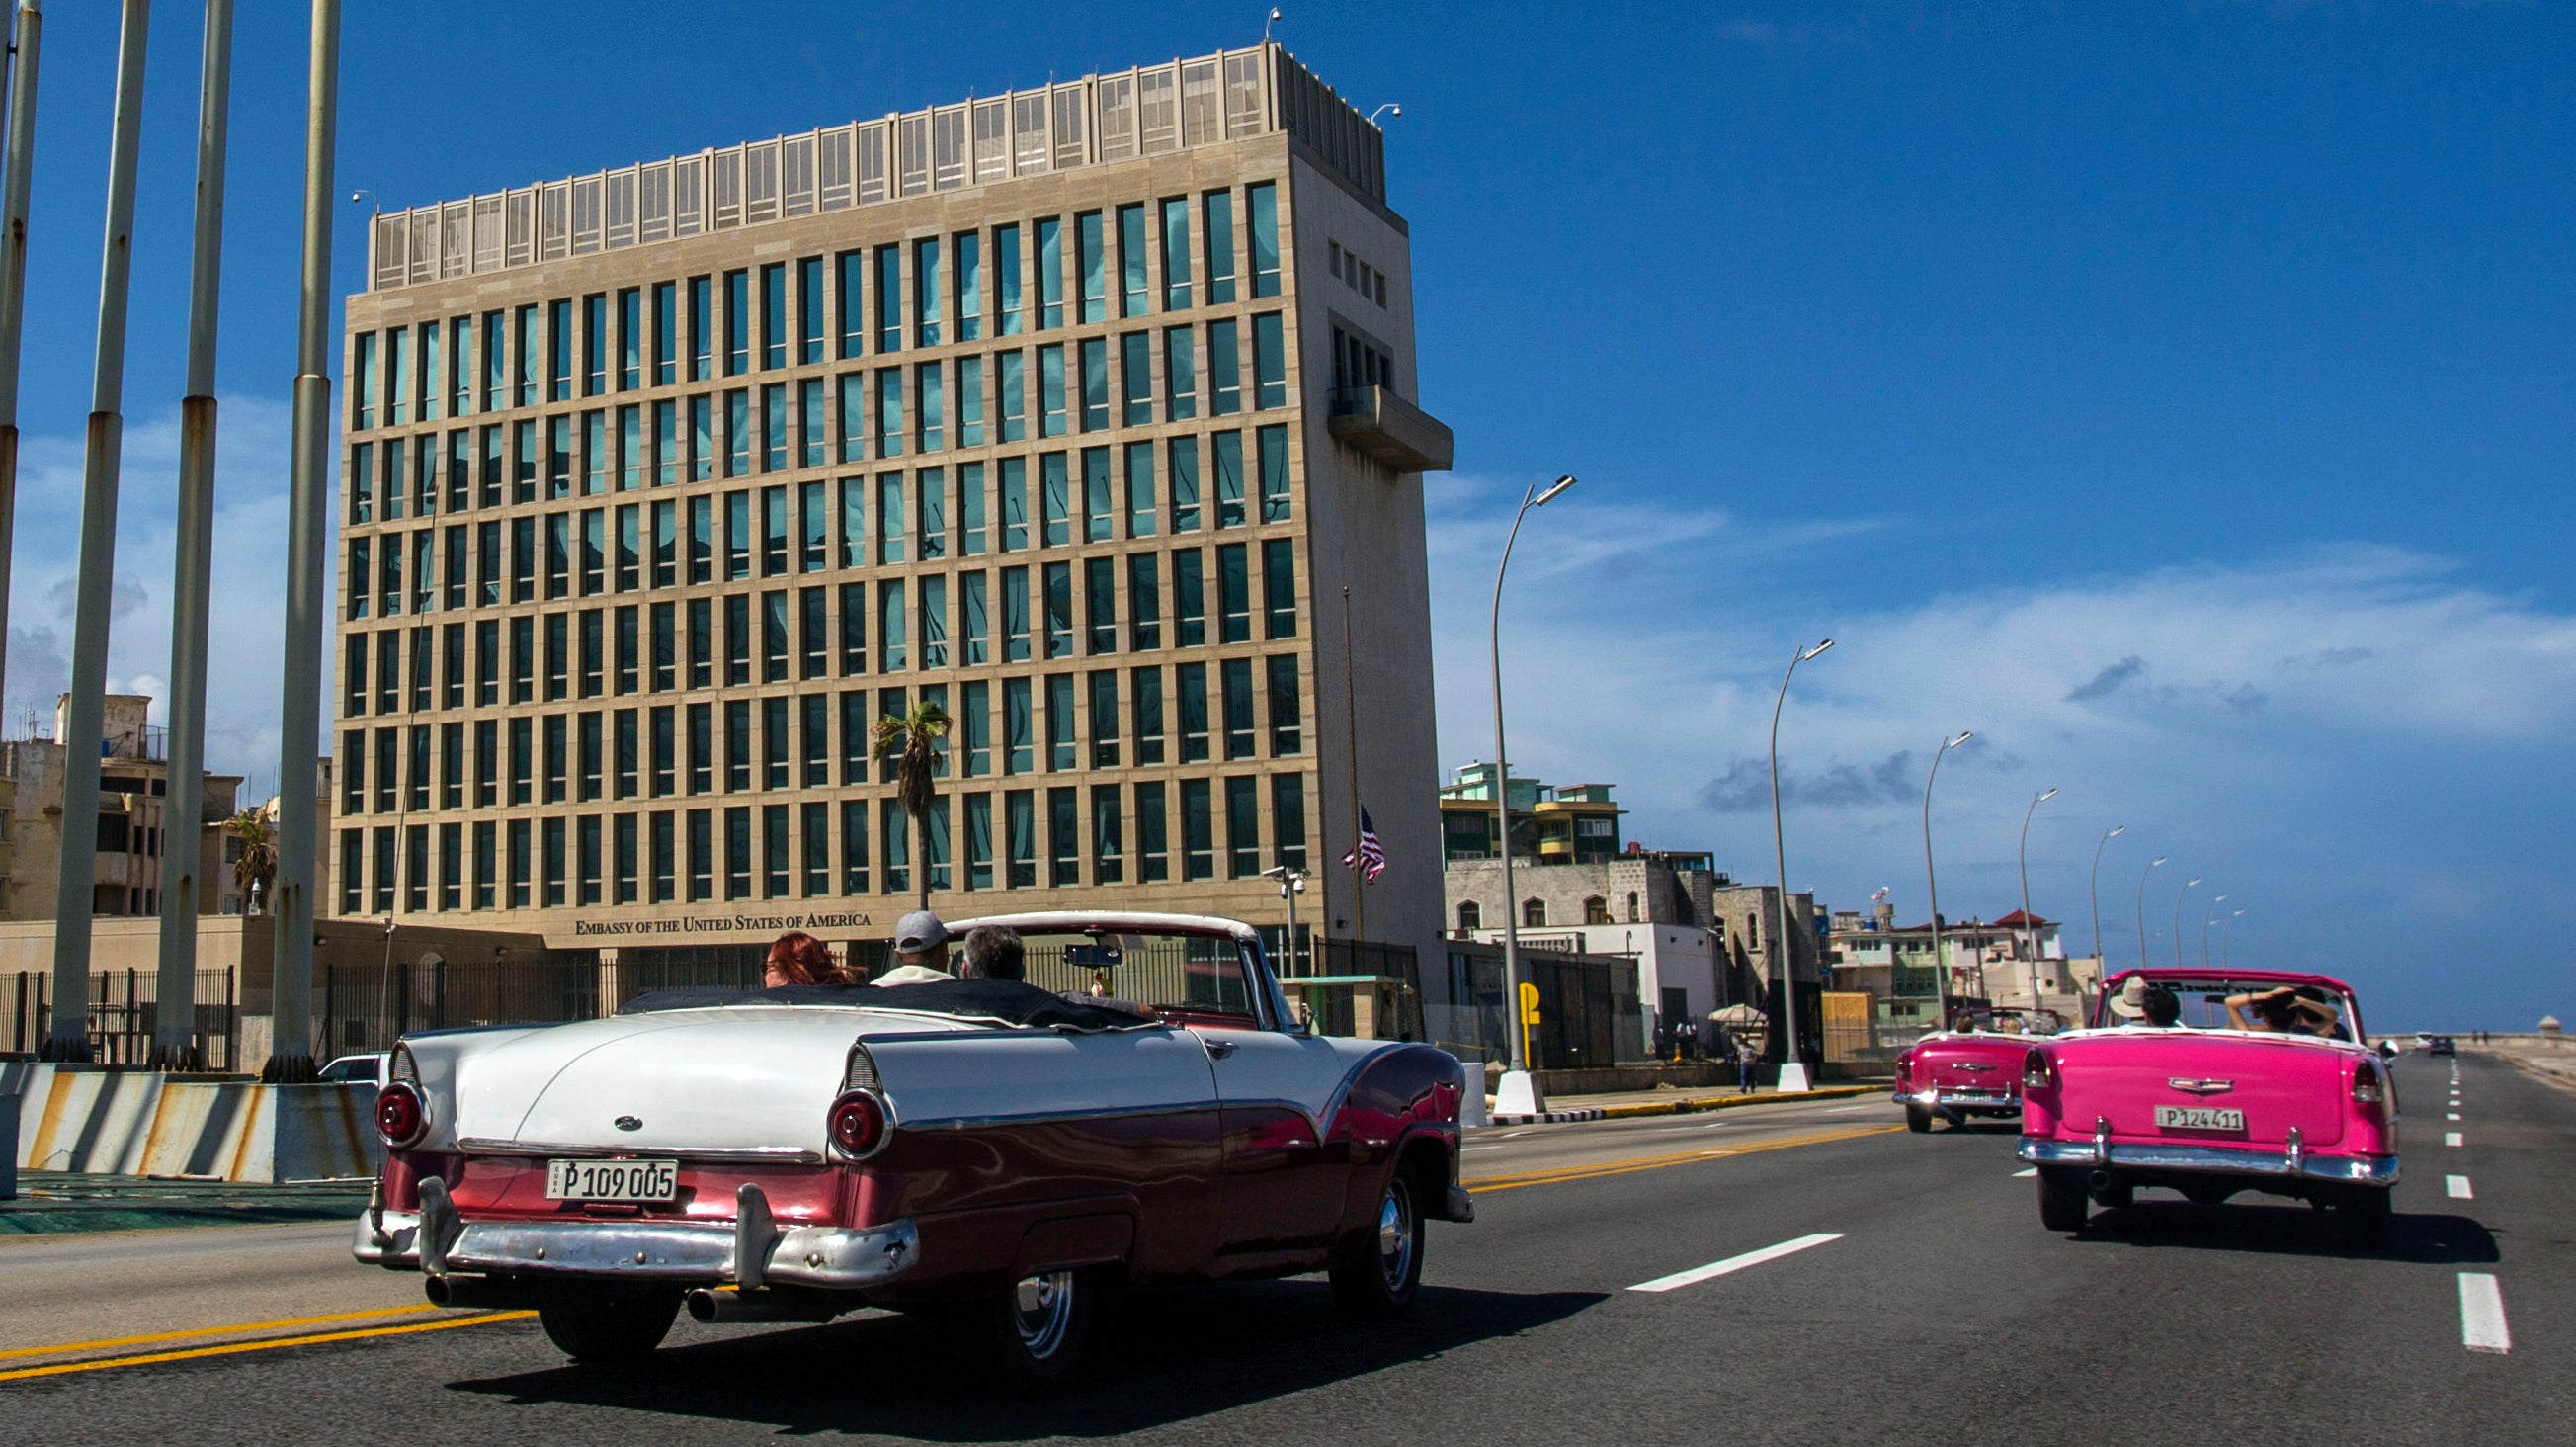 Study: Mysterious Sound Recorded By Sickened Cuba Embassy Staff Was Just Crickets